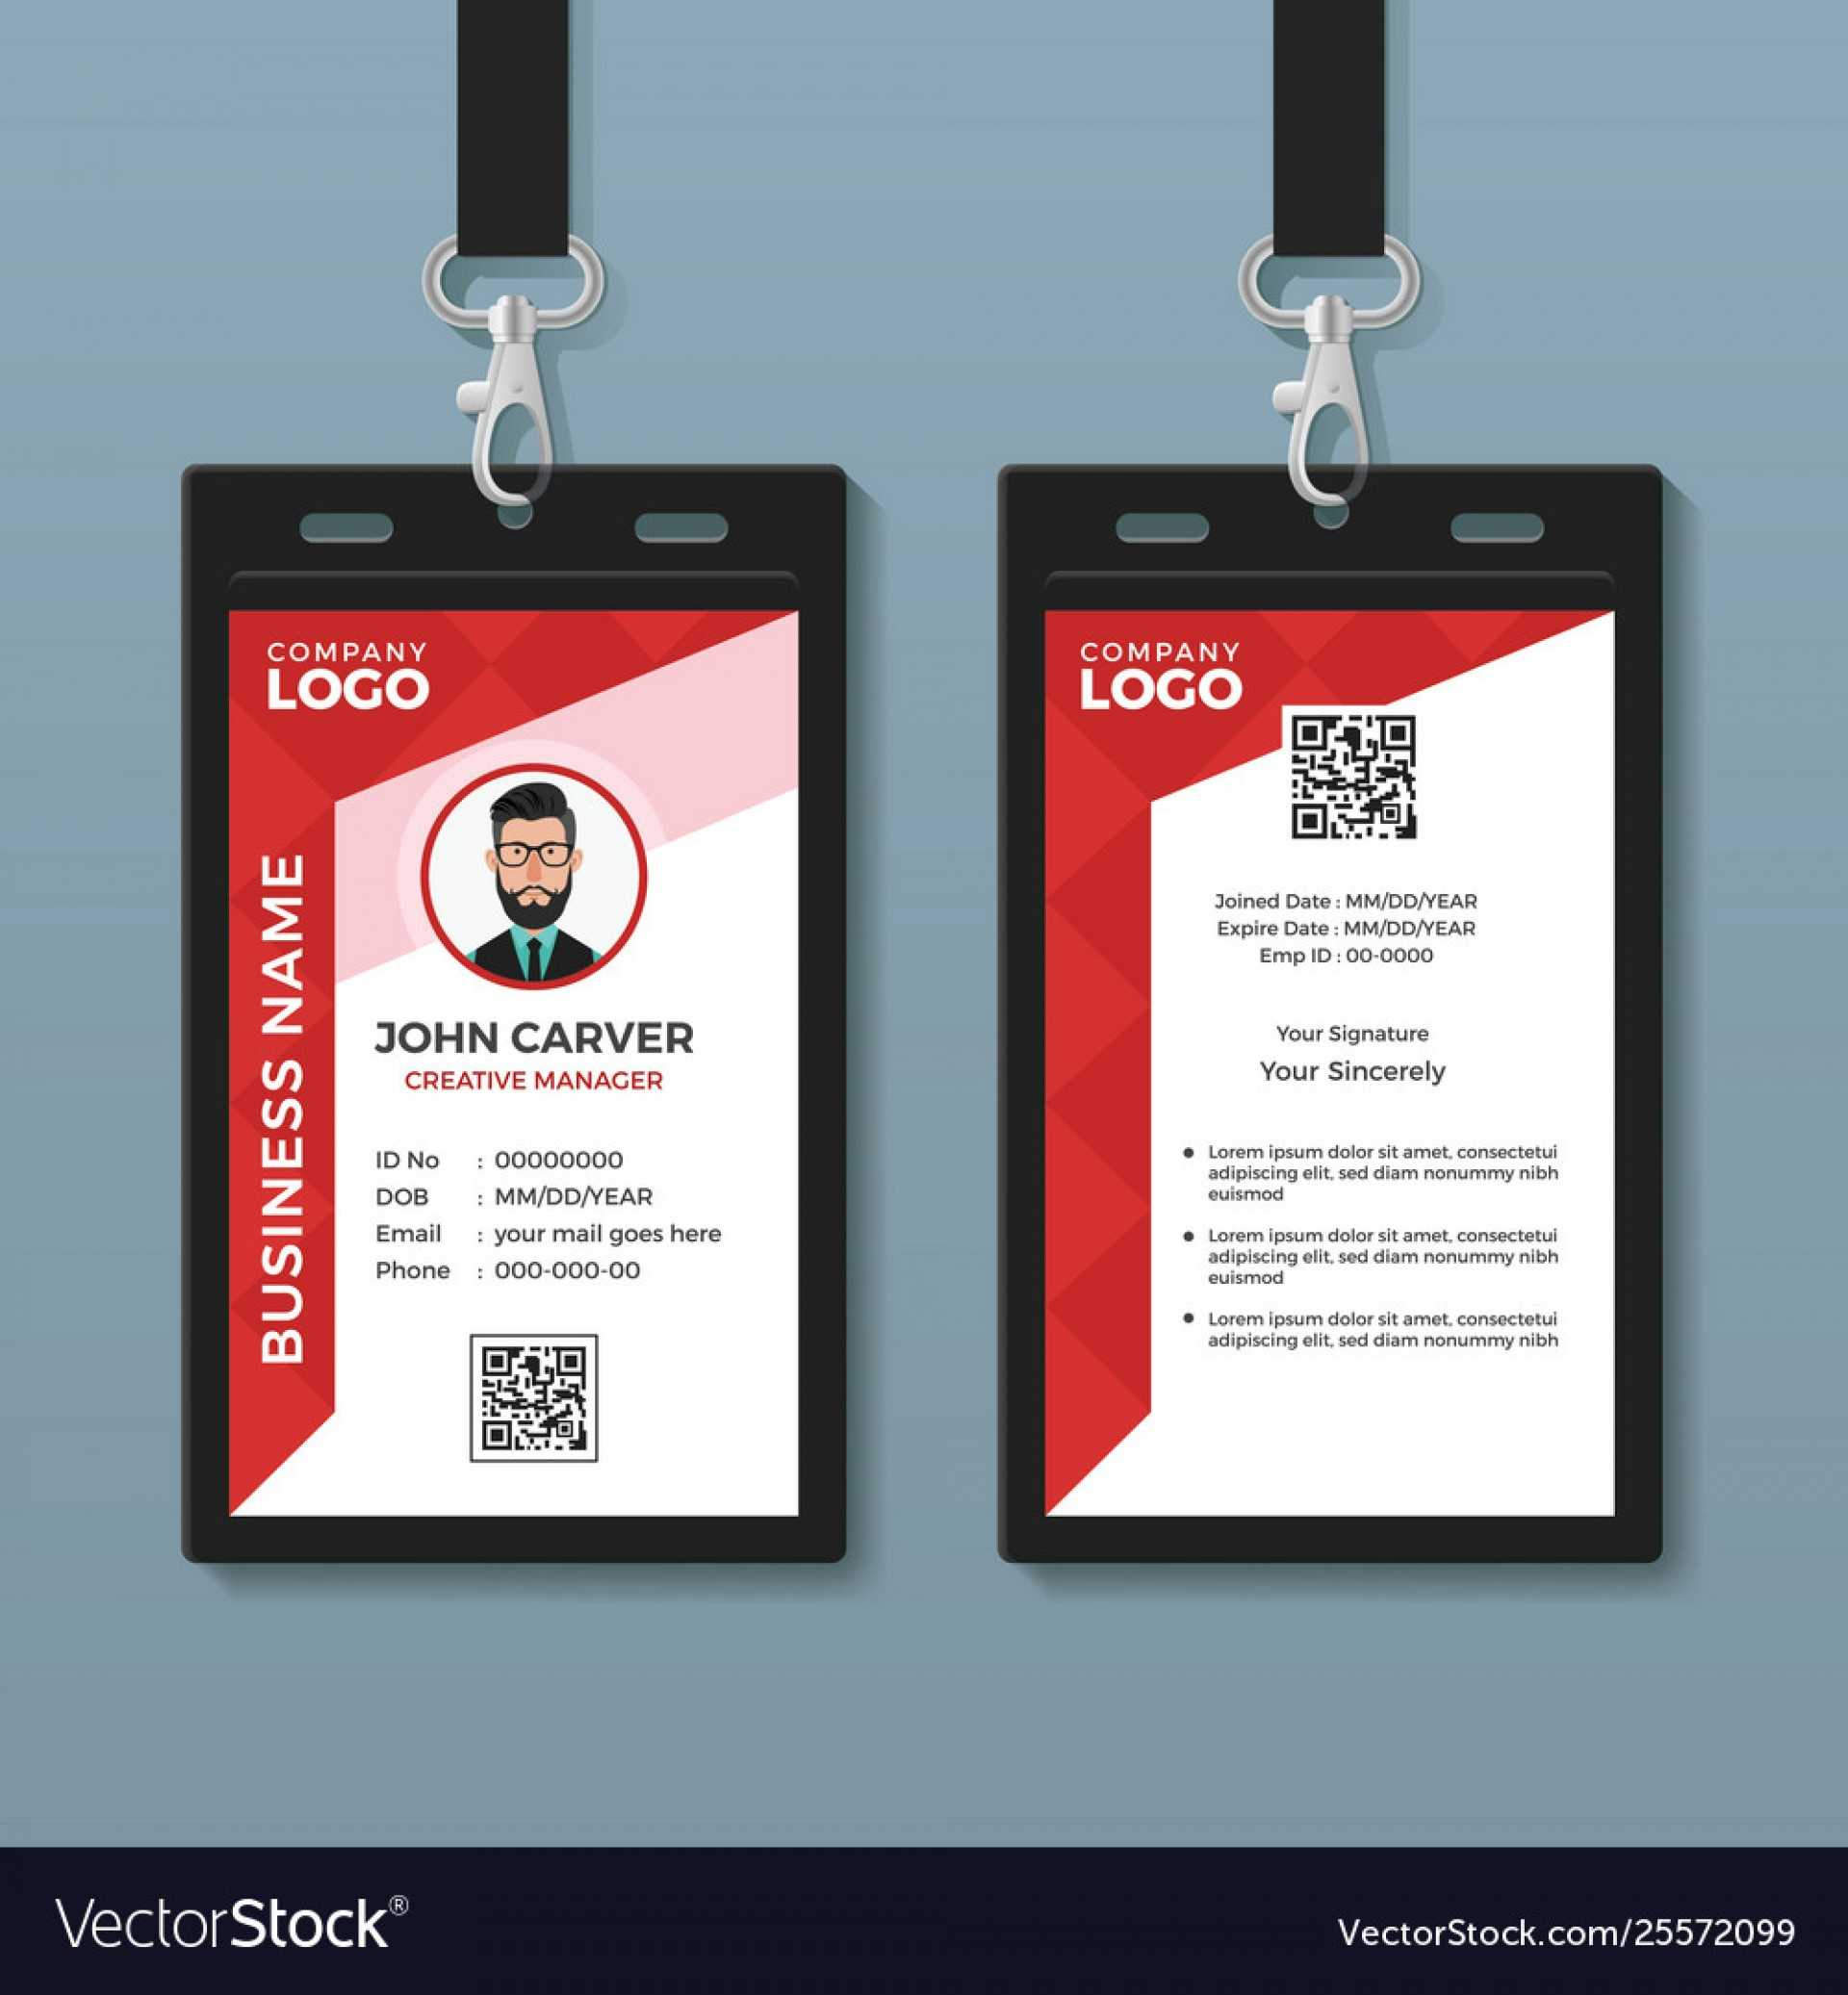 024 Id Card Template Photoshop Ideas Free Simple Red Graphic Regarding Pvc Id Card Template